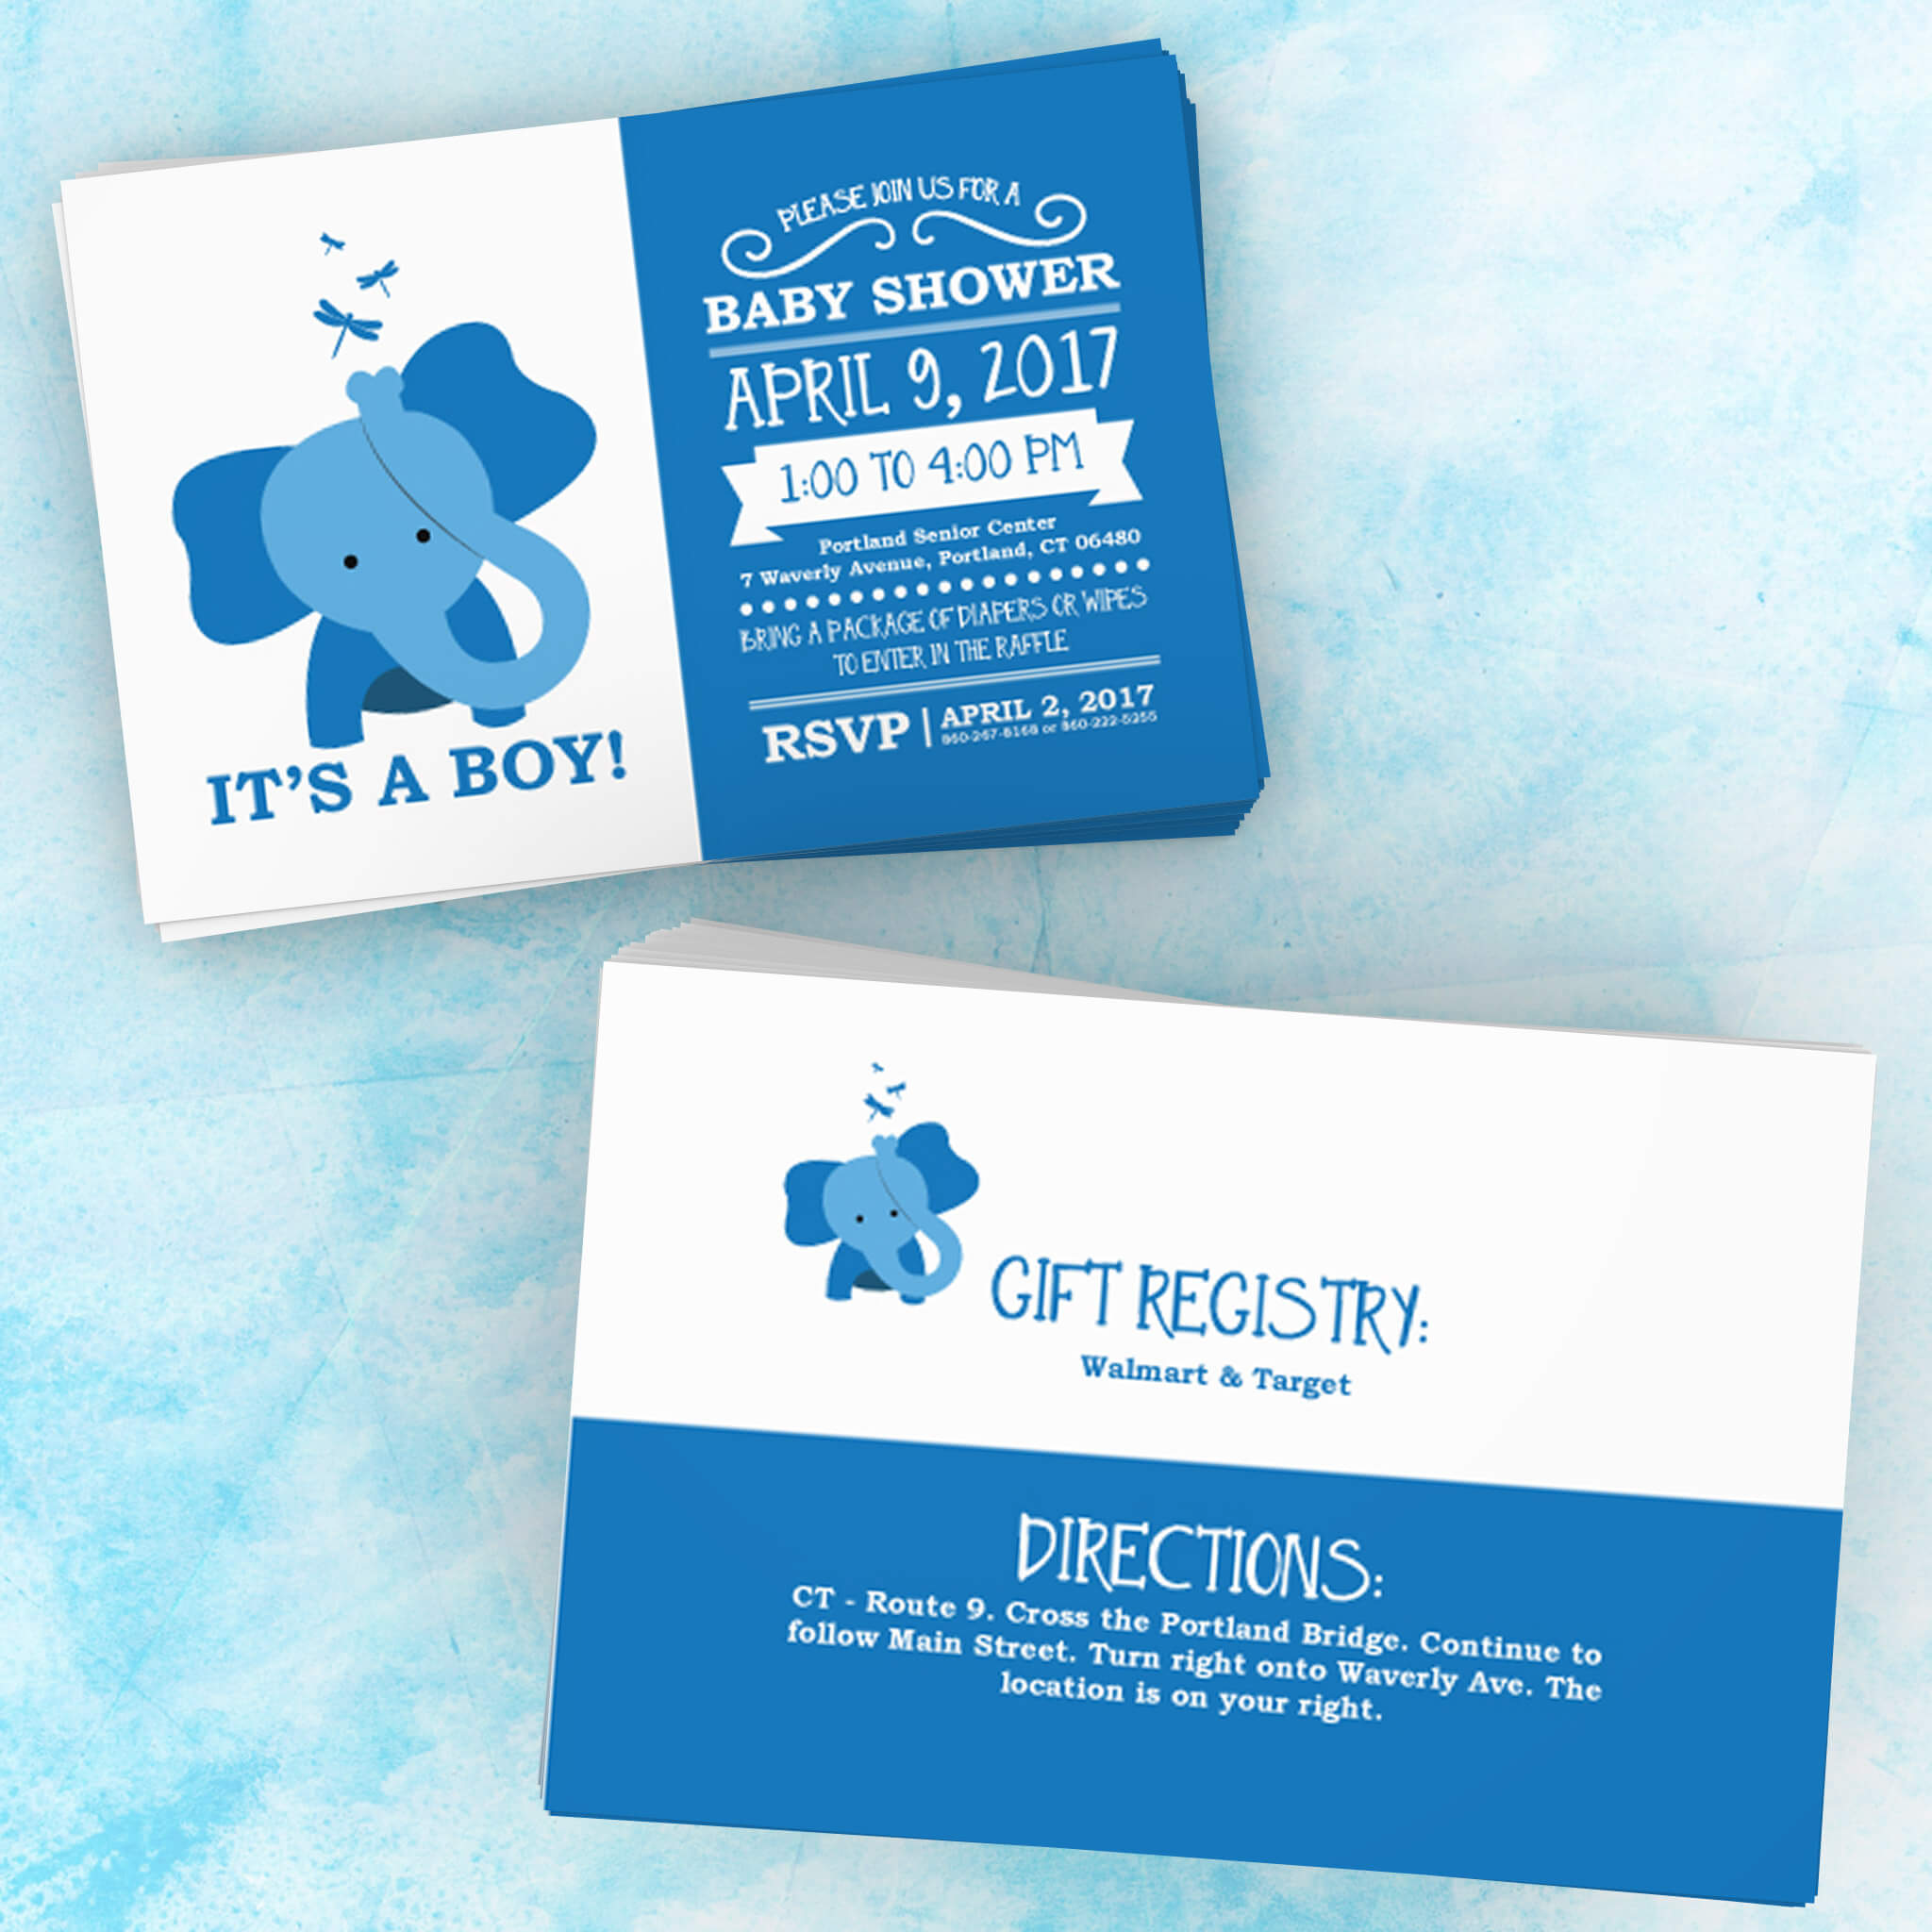 Baby Shower Invitation by Kevin Ferrisi